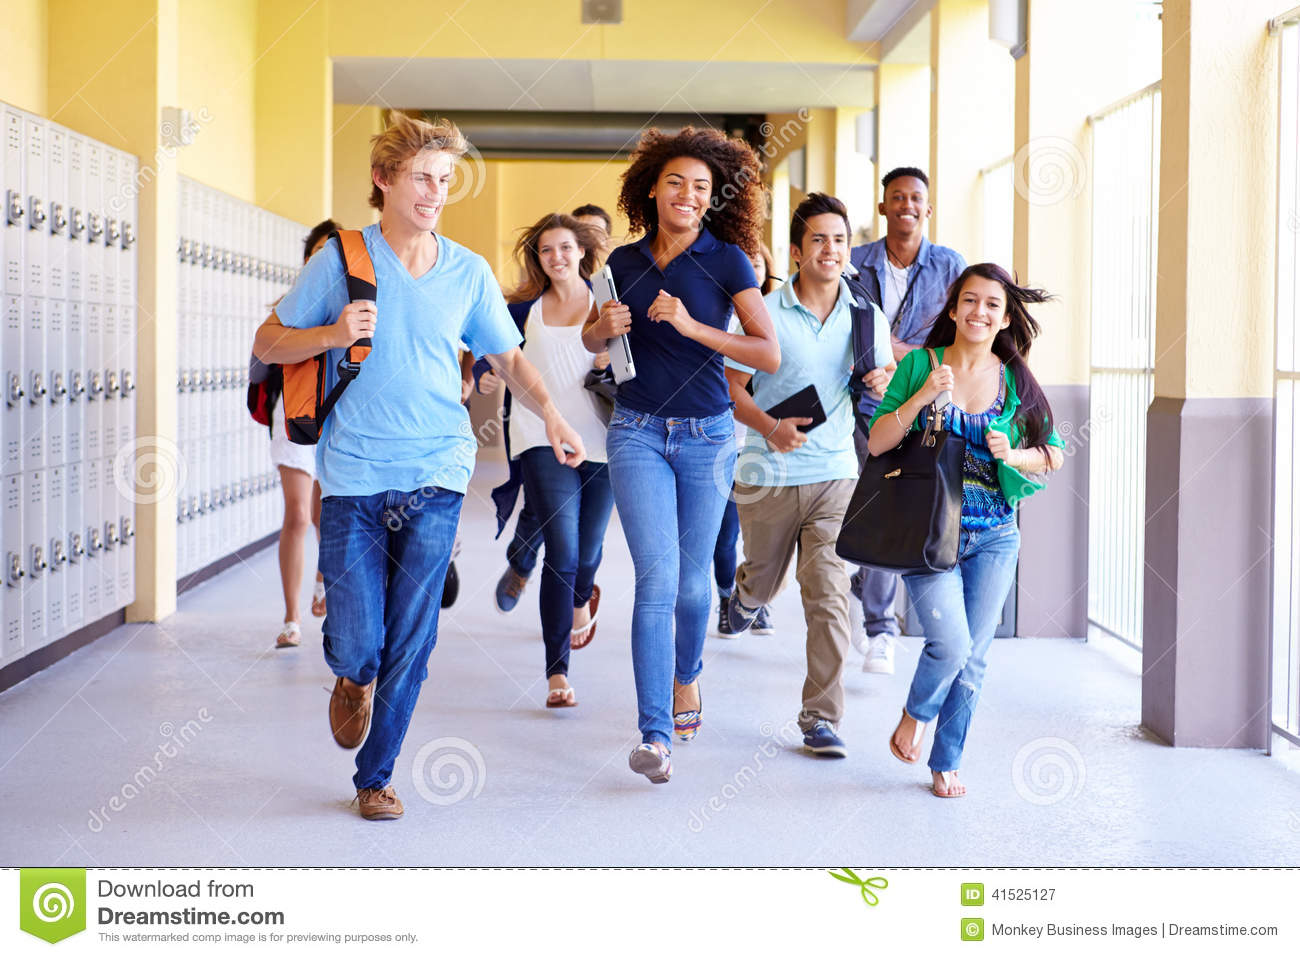 how to run a high school How to win a class election high school politics it will be a good way to get to know classmates and the school and gain experience before you run.